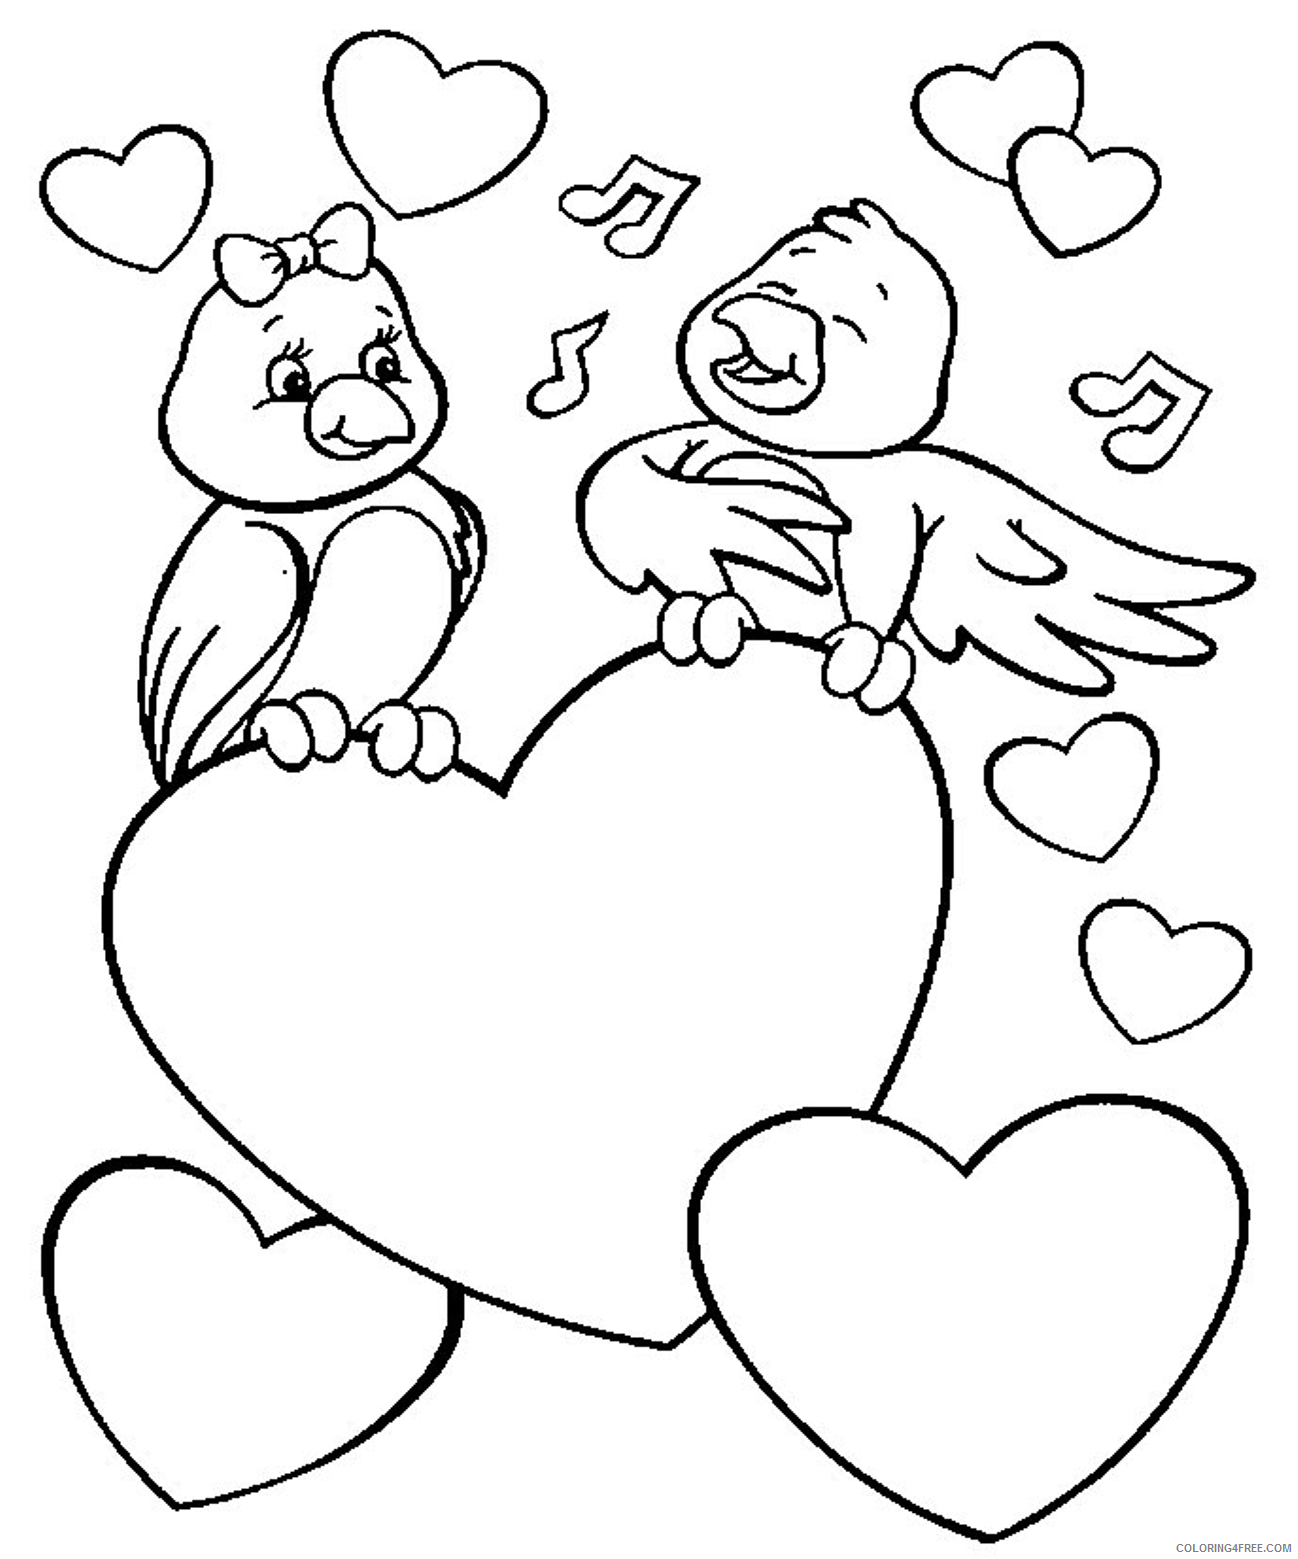 love coloring pages birds in love Coloring4free